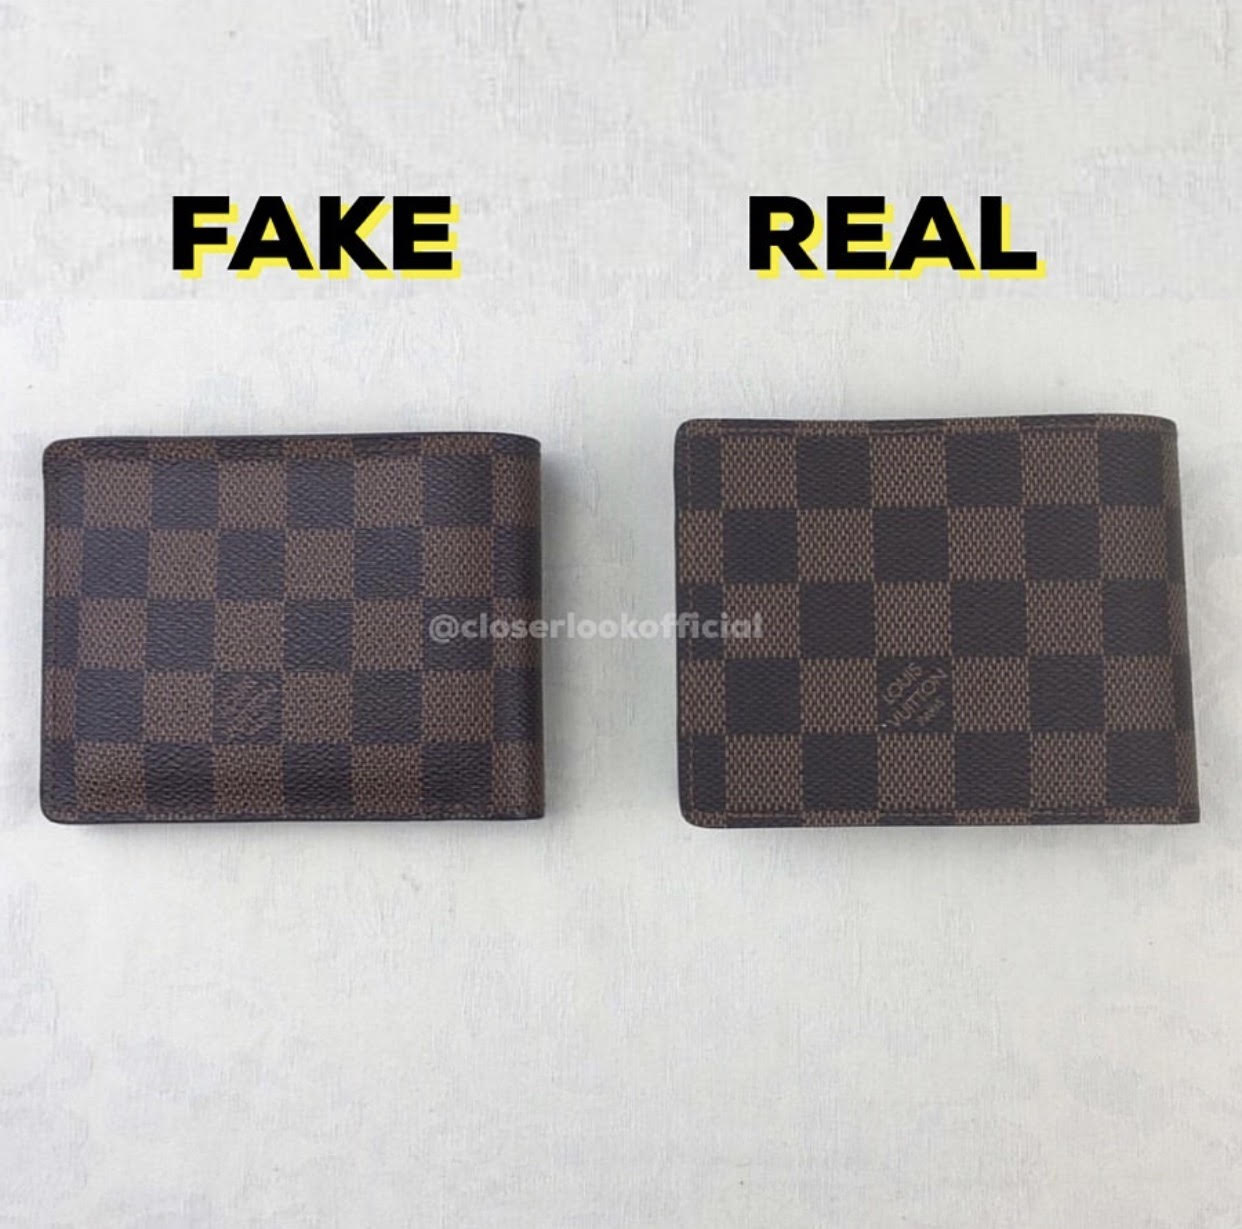 ad5efdf693 How To Spot a Fake Louis Vuitton Multiple Wallet - Brands Blogger